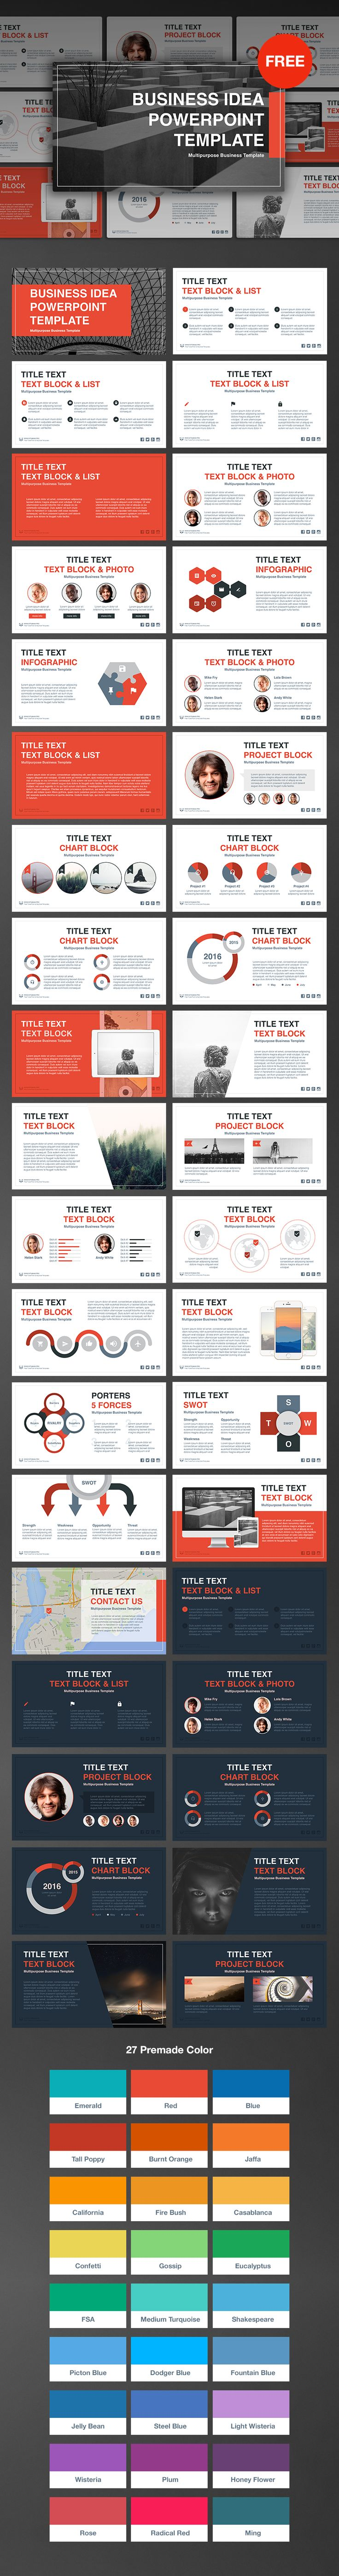 40 best free powerpoint template images on pinterest free stencils free download powerpoint template httpshislideproductbusiness toneelgroepblik Image collections